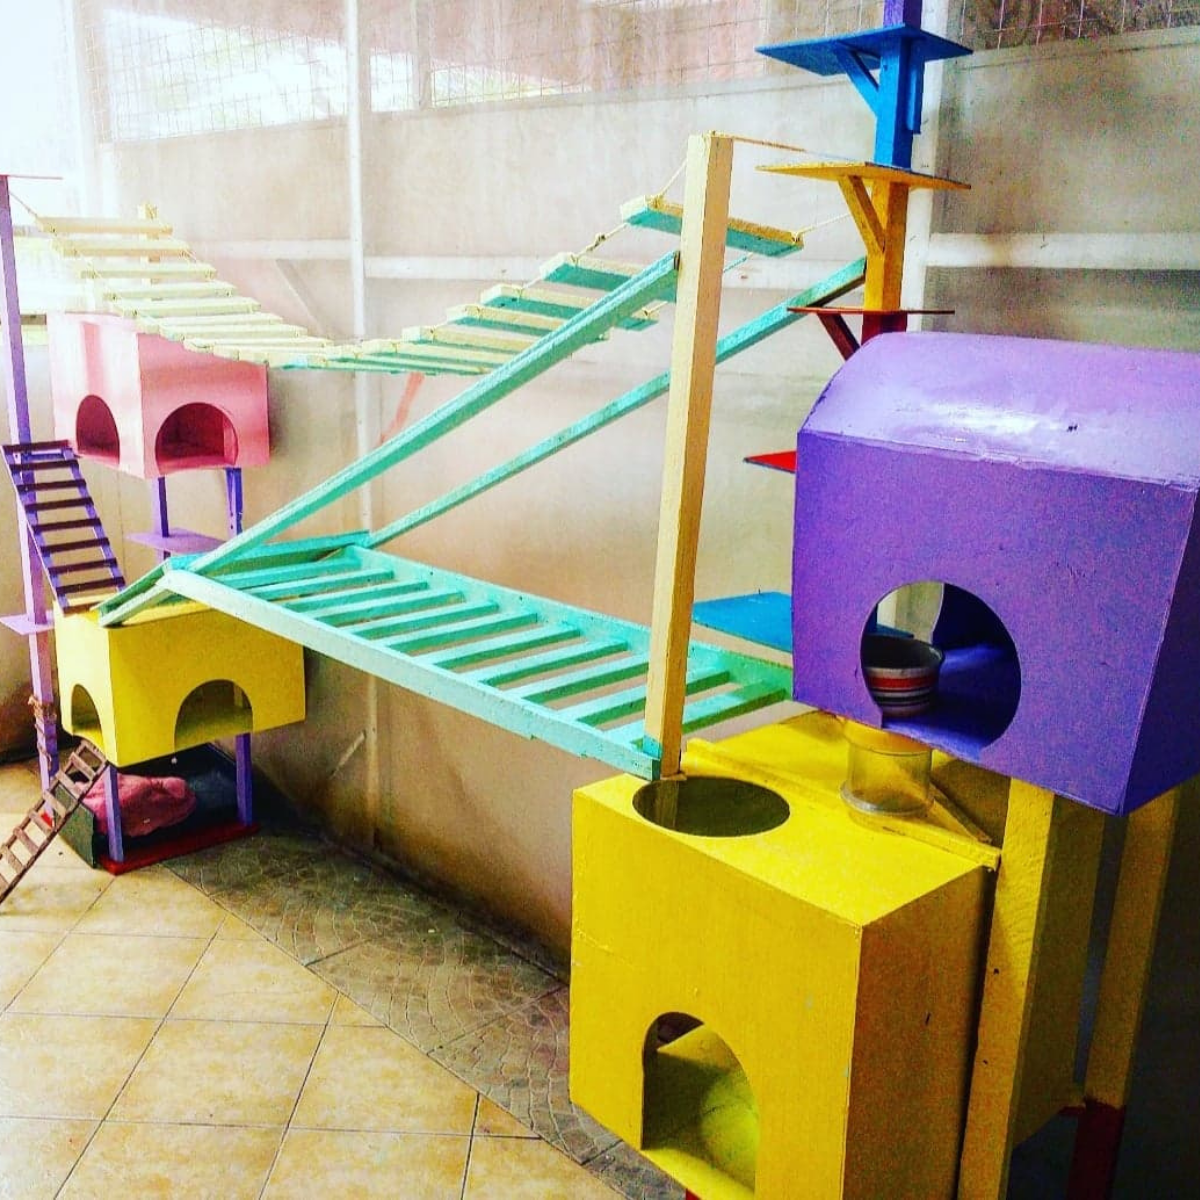 These towers and bridges will be so much fun for your kitty.